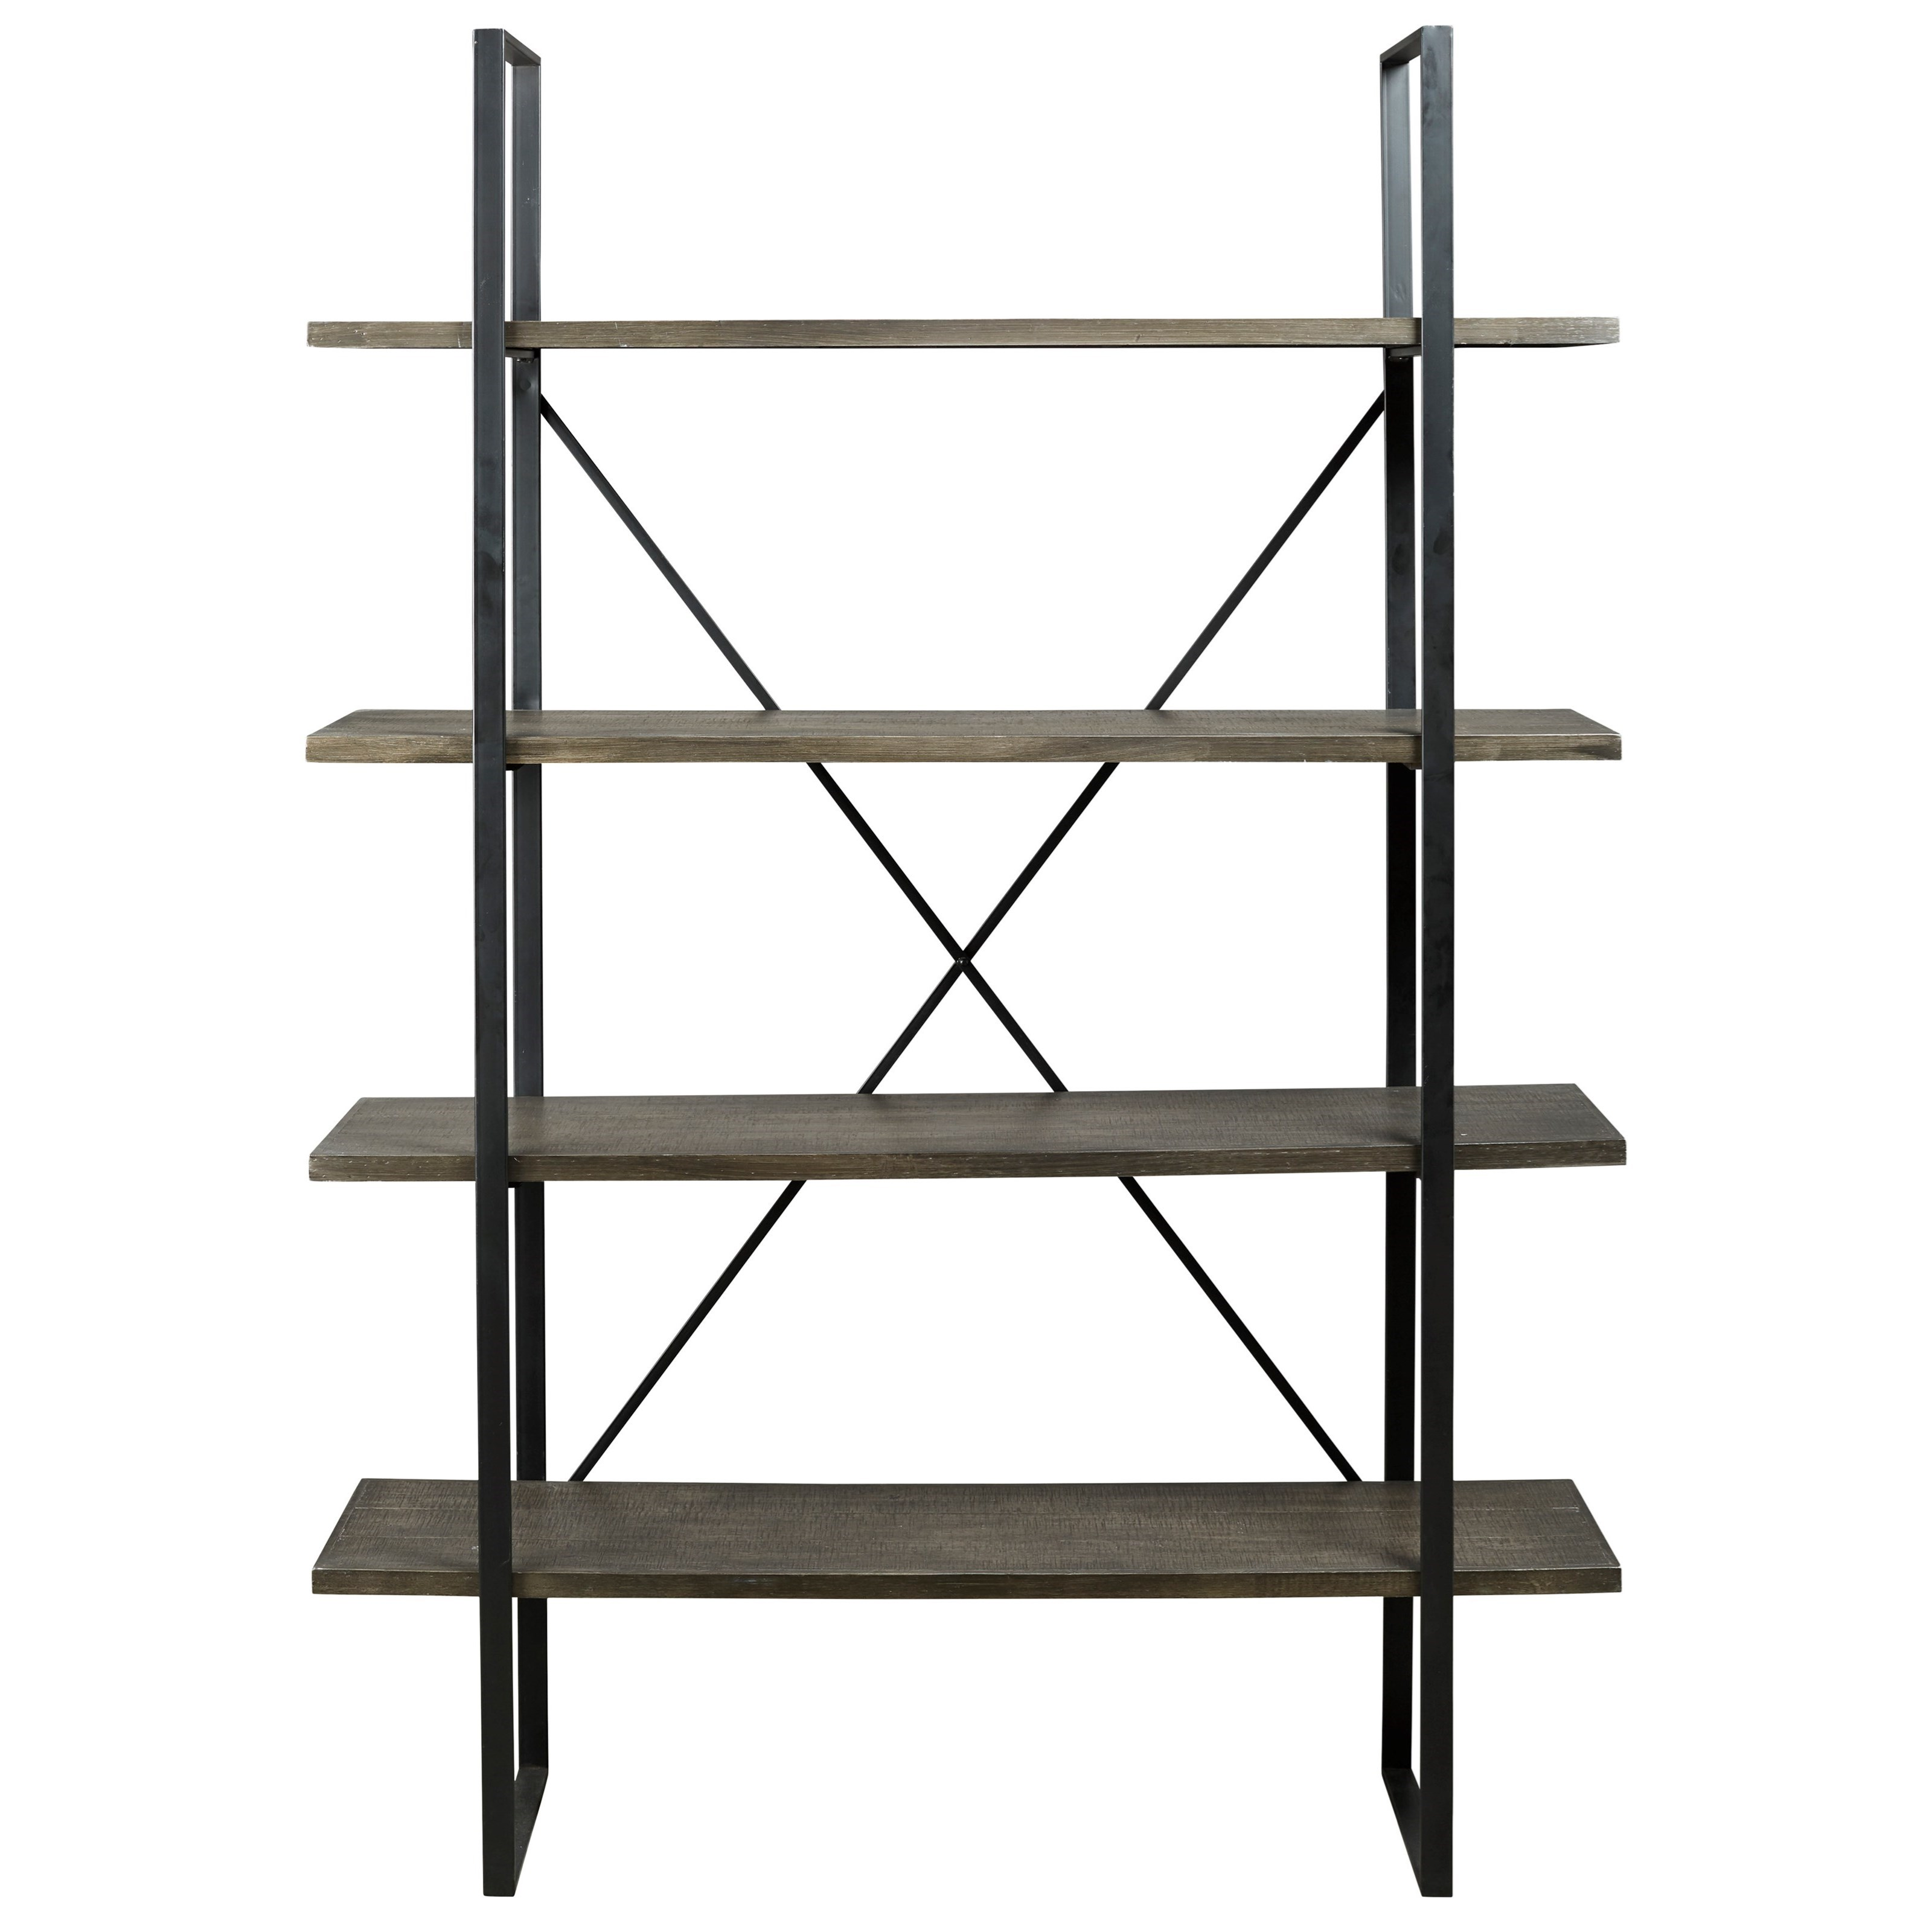 Gilesgrove Industrial Metal Wood Bookcase With 4 Shelves By Signature Design By Ashley At Household Furniture